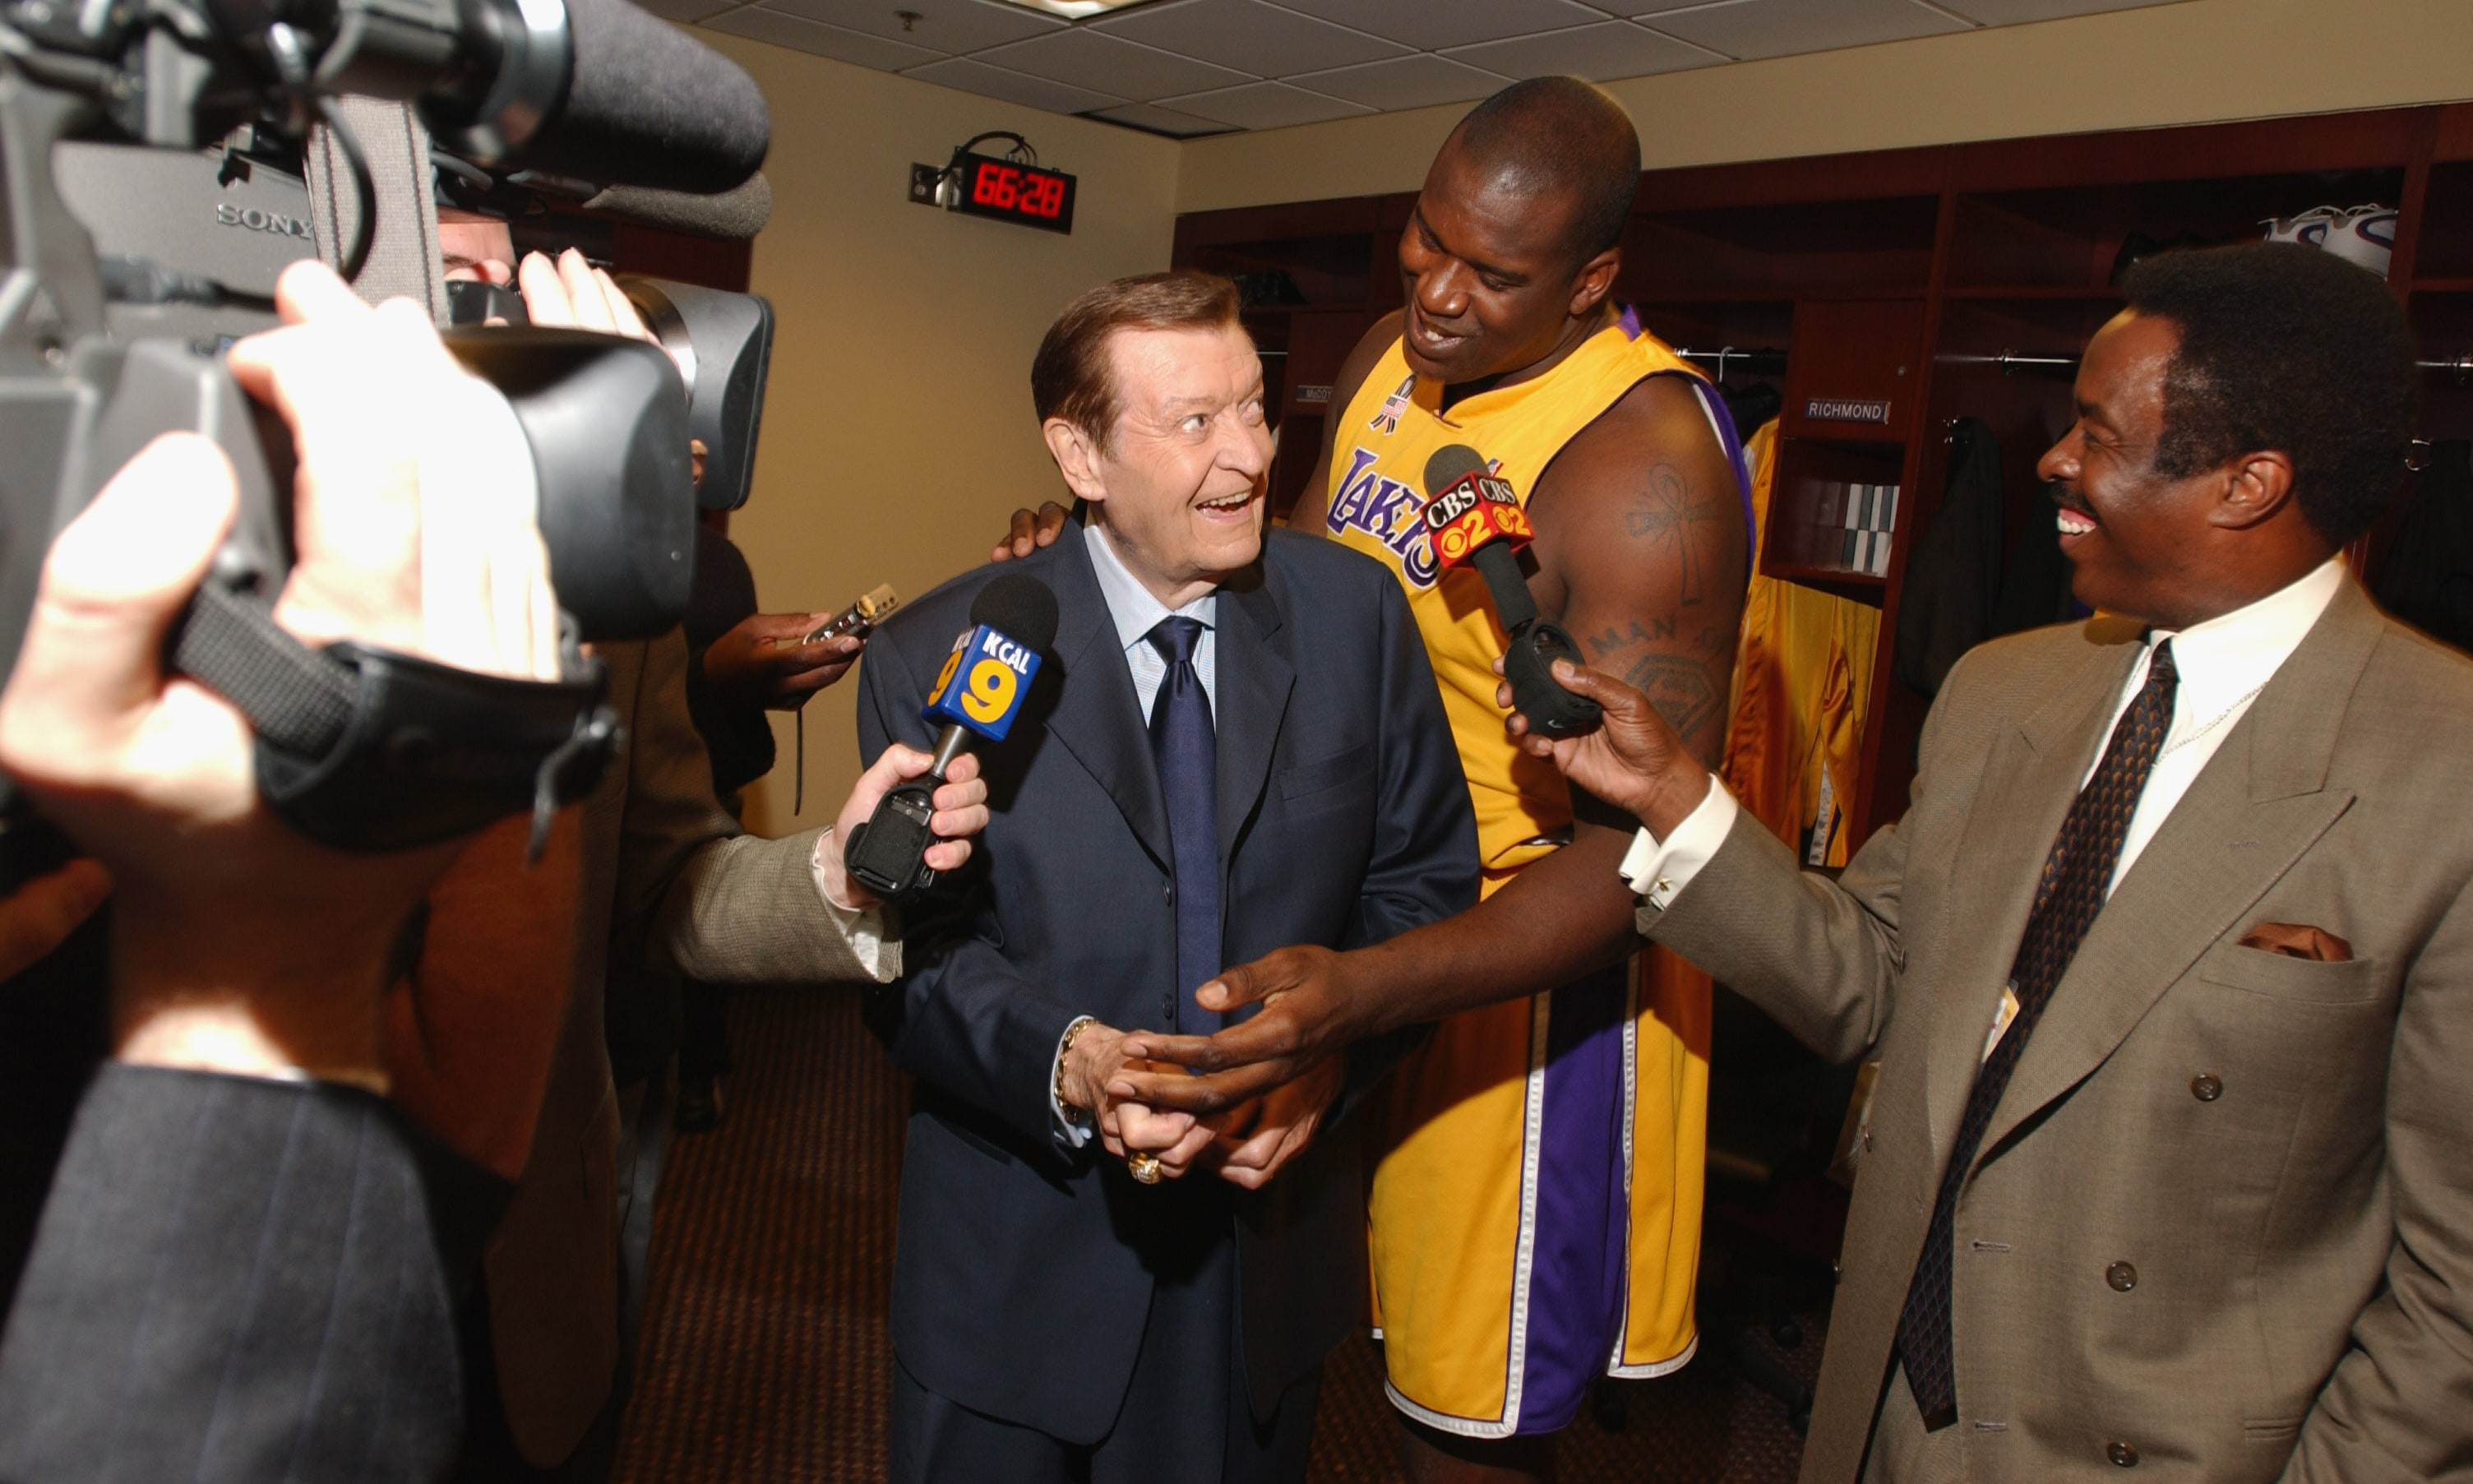 Chick Hearn and Shaq